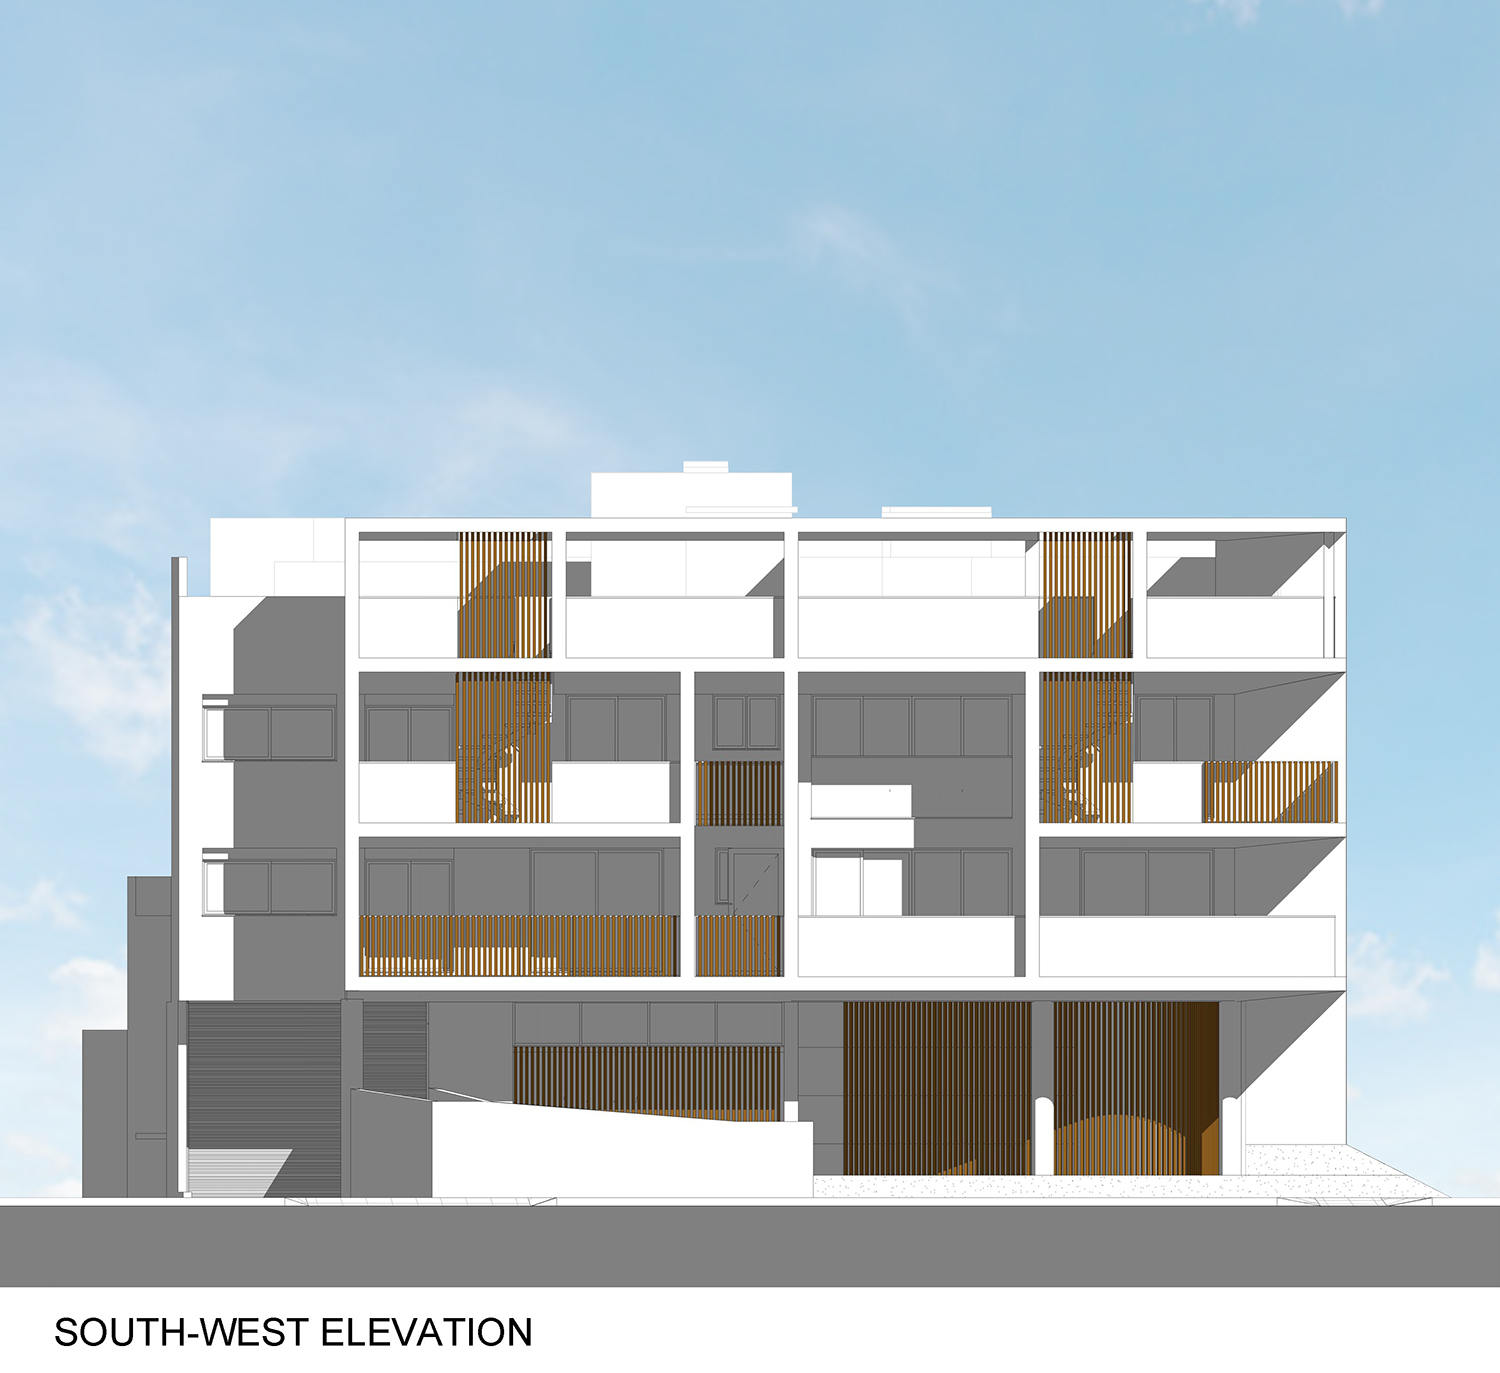 South-west Elevation }